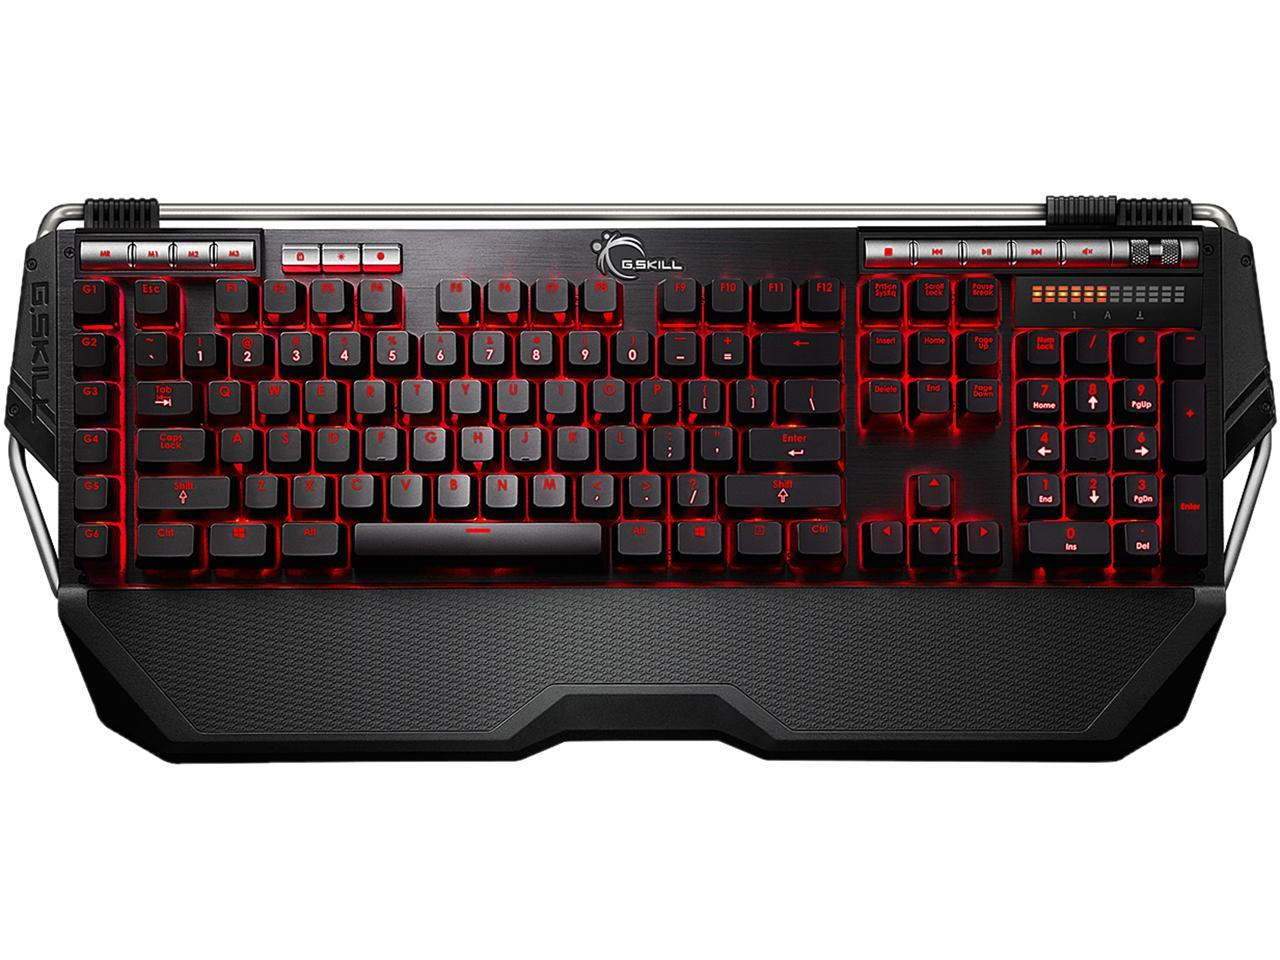 G.SKILL RIPJAWS KM780R MX Mechanical Gaming Keyboard - Cherry MX Red